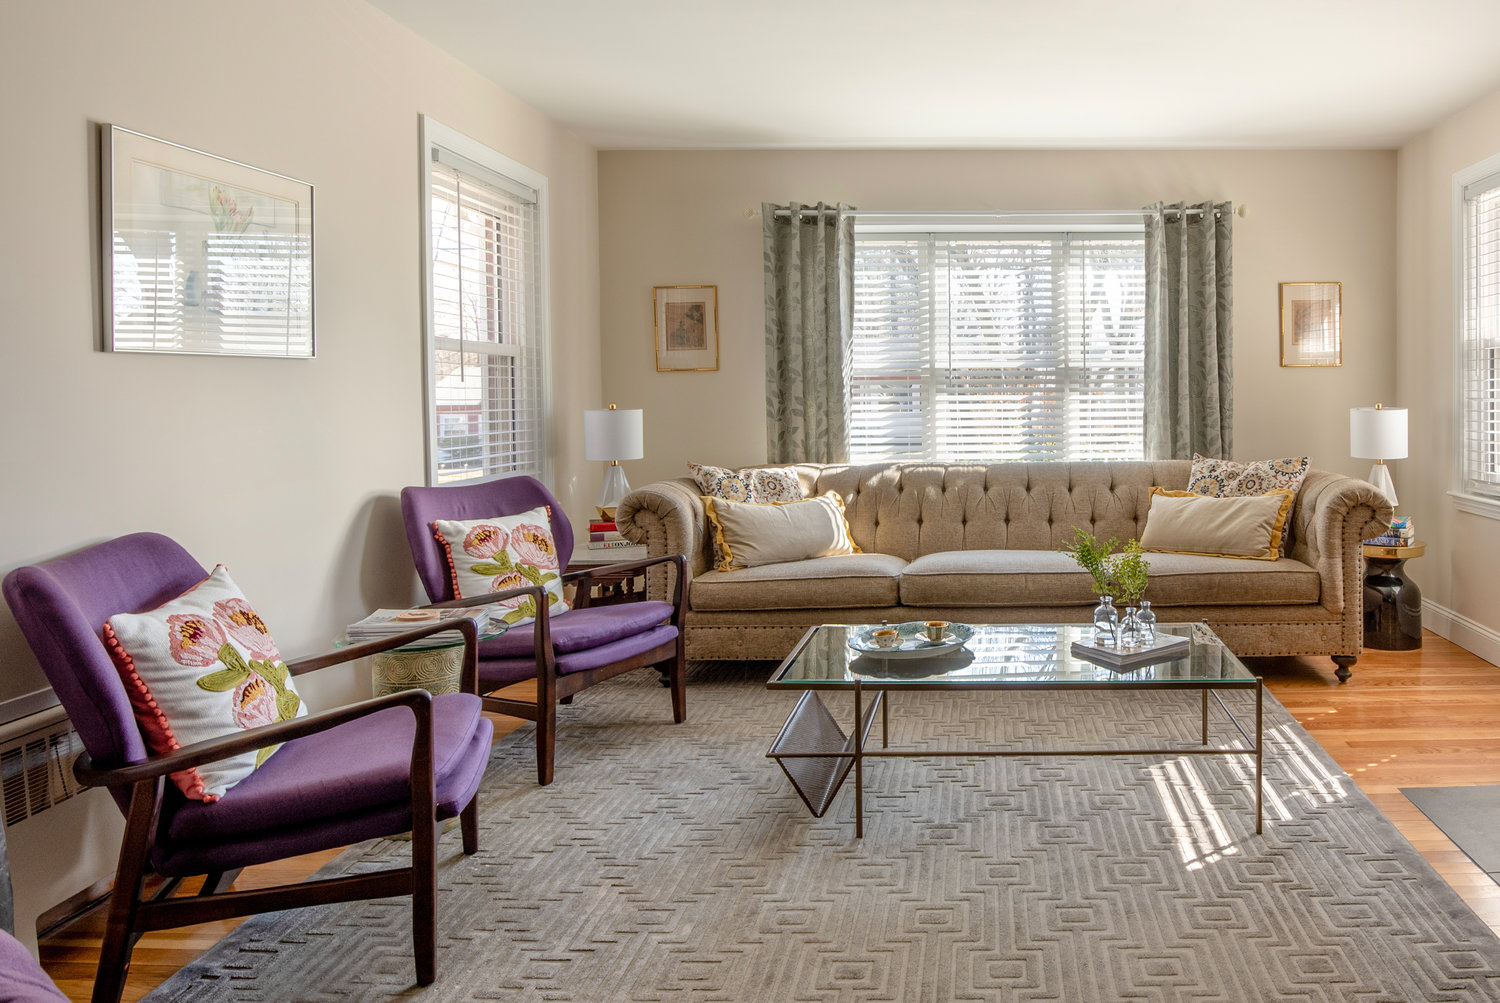 A pair of violet chairs infuses rich color into the neutral palette